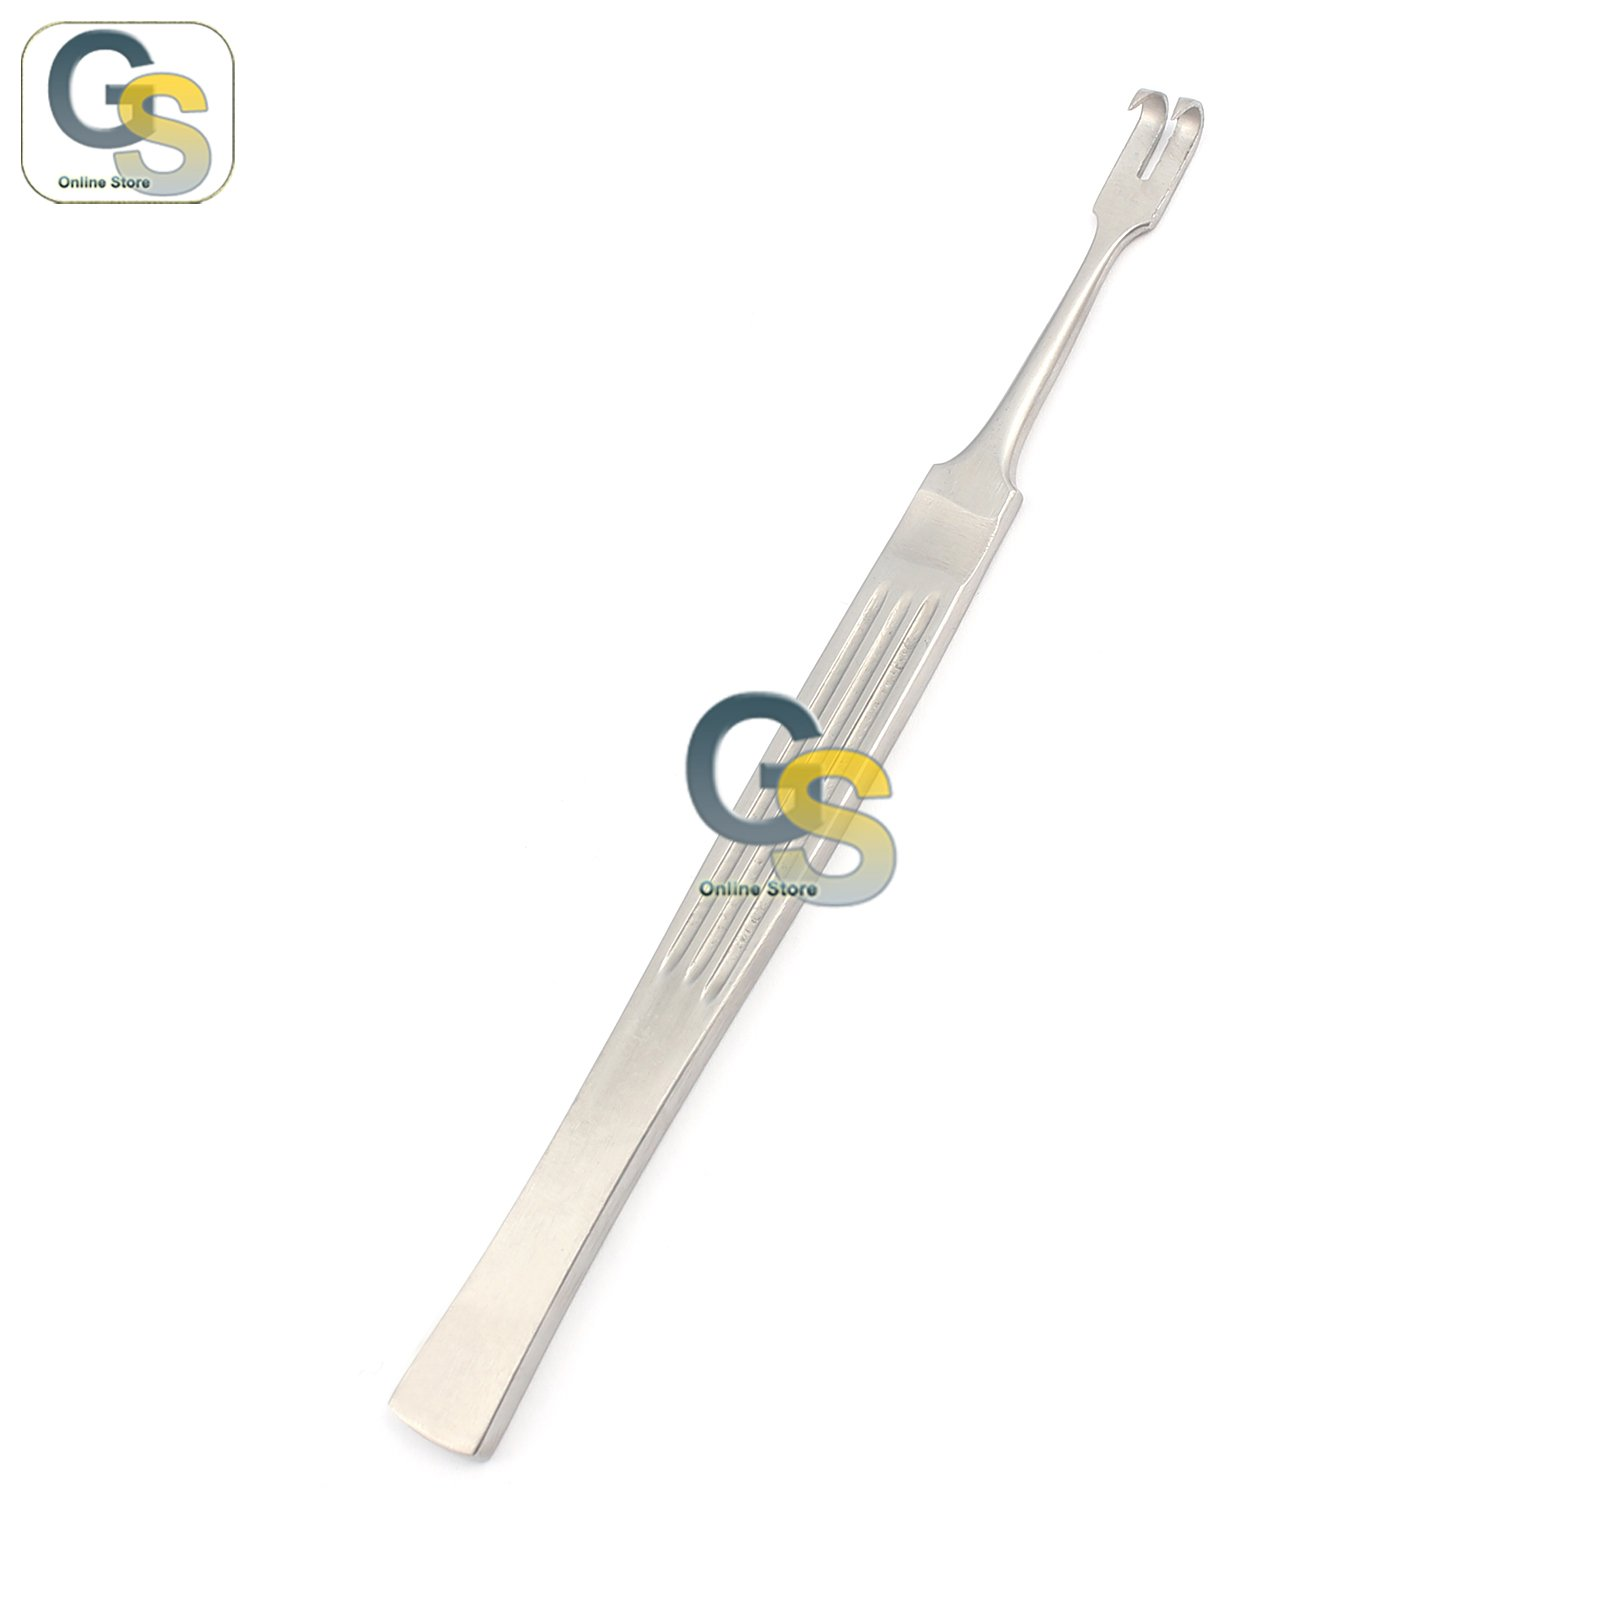 G.S GUTHRIE HOOK 5'' SHARP DOUBLE PRONGS 1.5MM WIDE | G.S BEST QUALITY